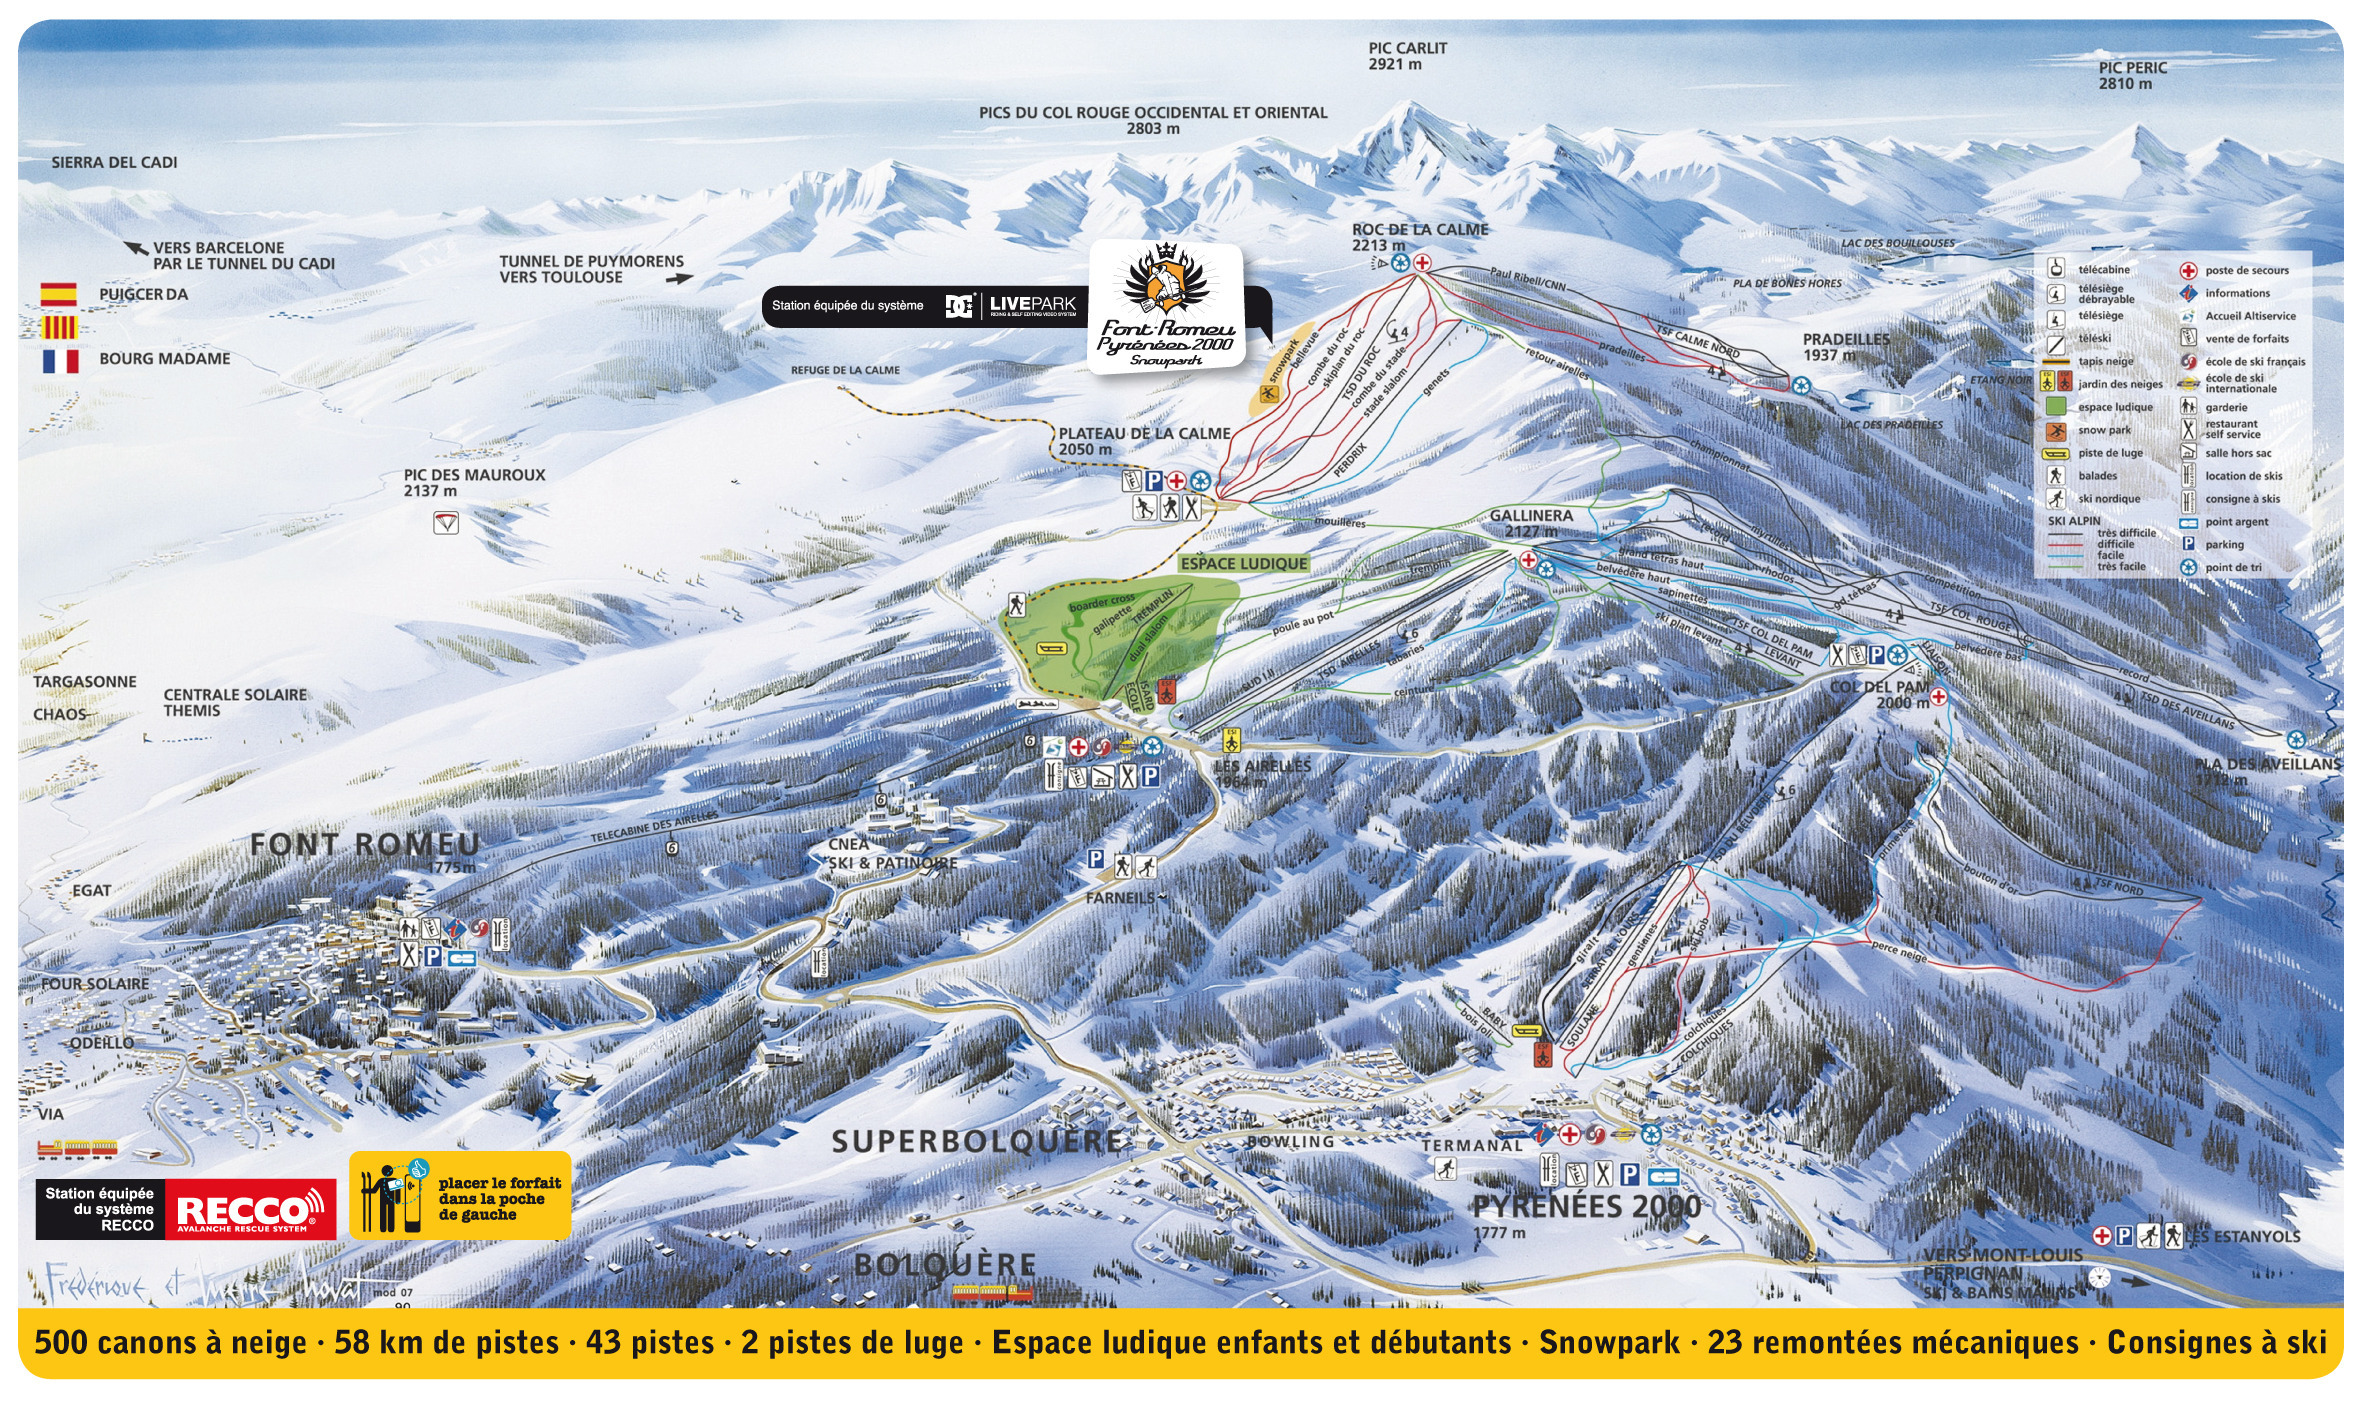 Font romeu pyrenees 2000 piste map plan of ski slopes for Piste de ski interieur